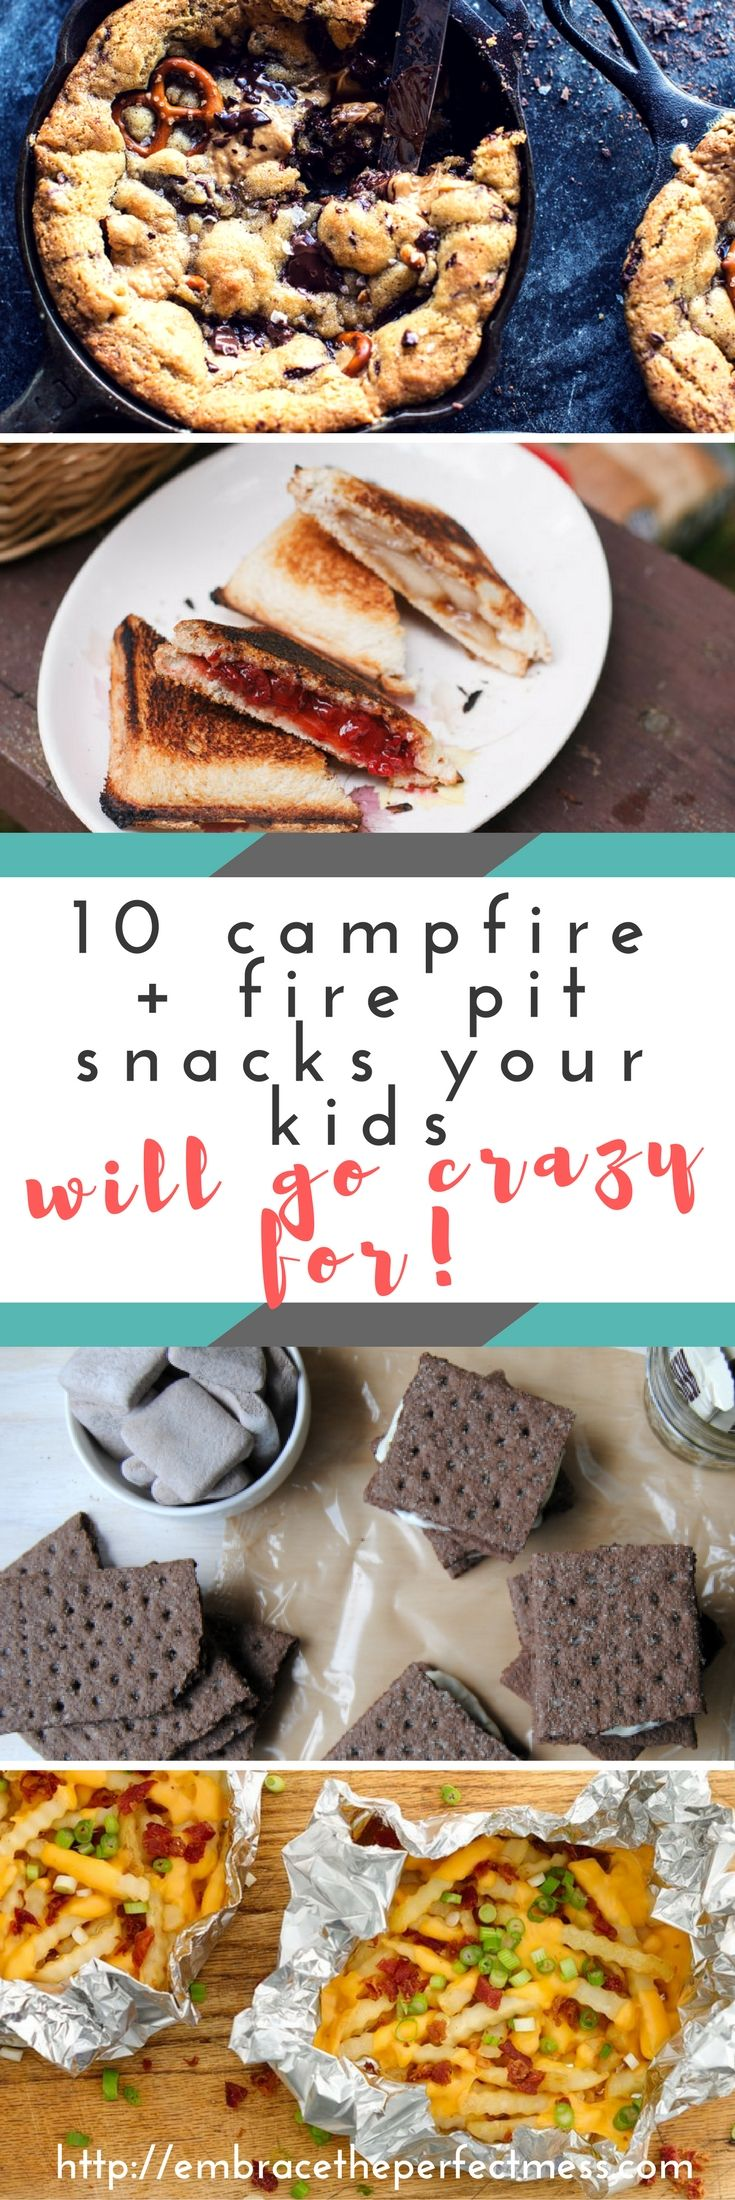 It just isn't a camping trip without campfire snacks. The best part about this is there's no reason you can't make these in the backyard fire pit!